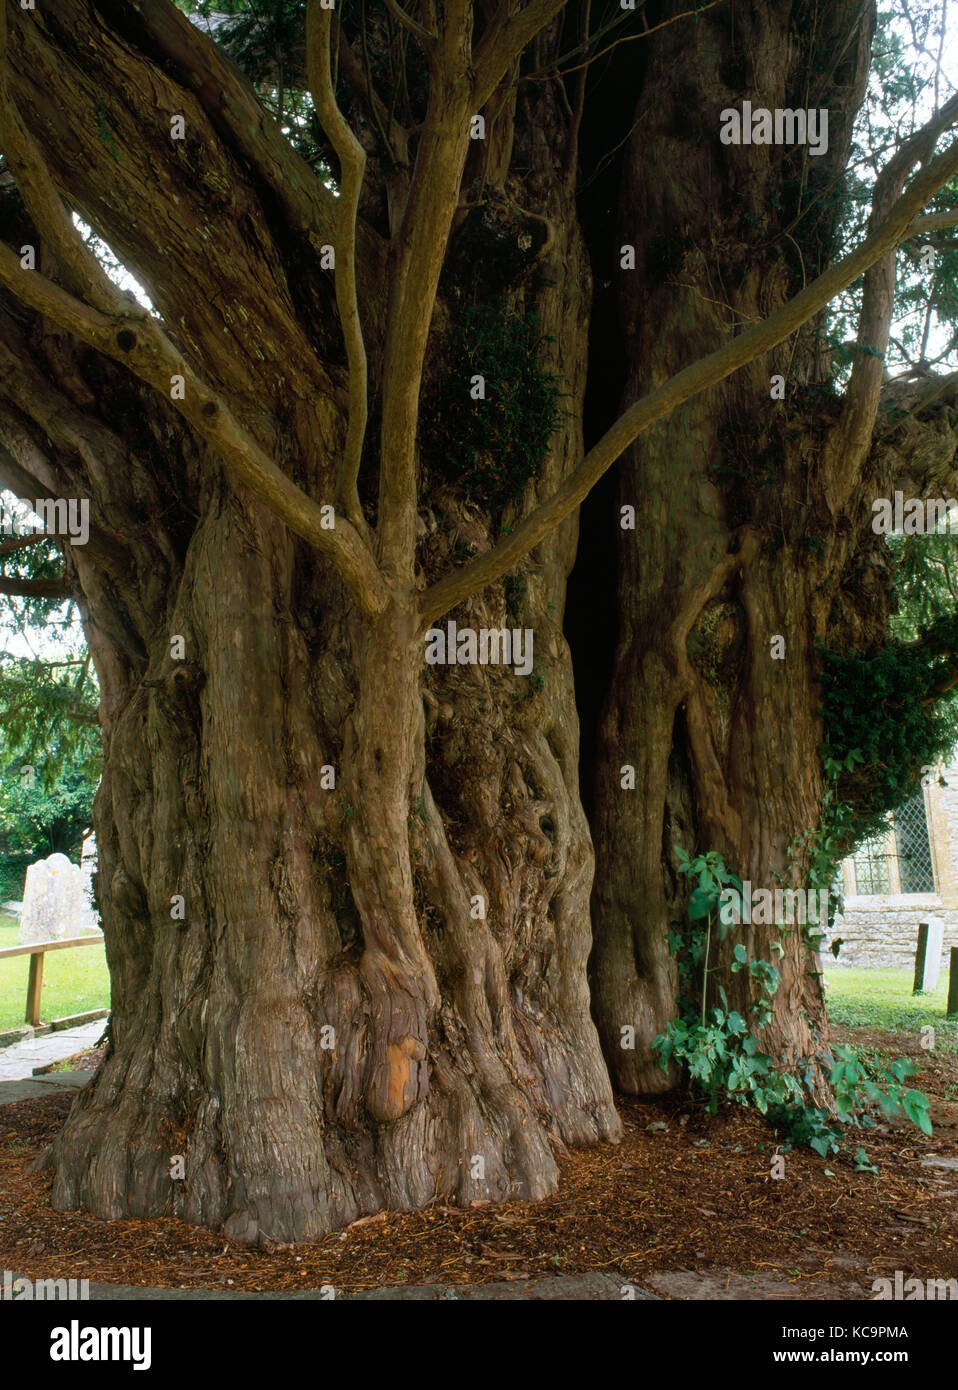 Ancient churchyard yew tree, Compton Dundon, Somerset, England. Estimated as 1700 years old, with a girth of 23ft. - Stock Image